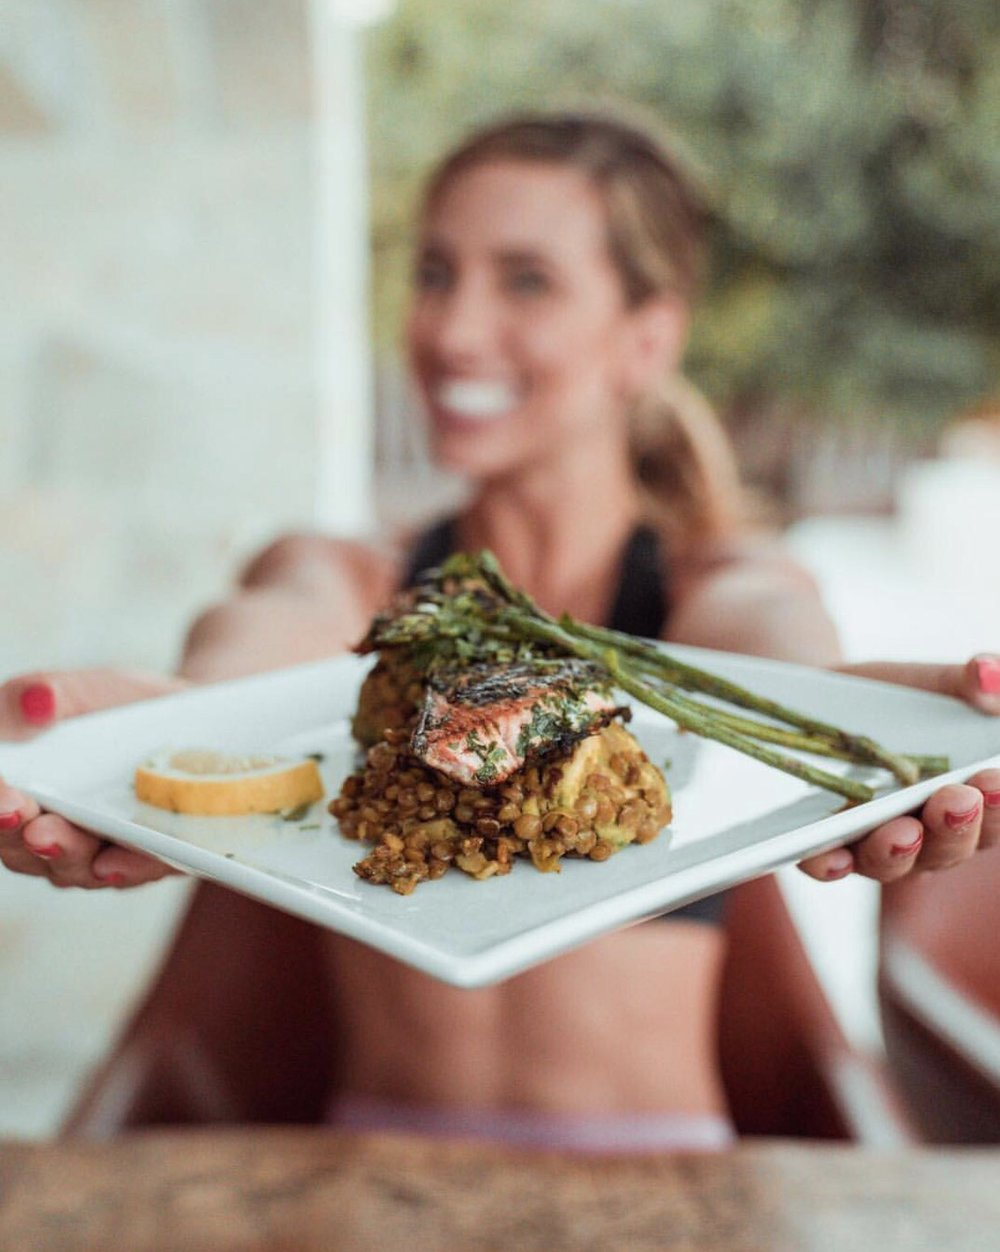 -  Ingredients: Green lentils 150gSalmon fillets x2Asparagus approx 8-10 stemsParsleyCorianderChilli peppersLemon x1Coconut oilAvocado x1Green & Red pesto x1 tsp of each